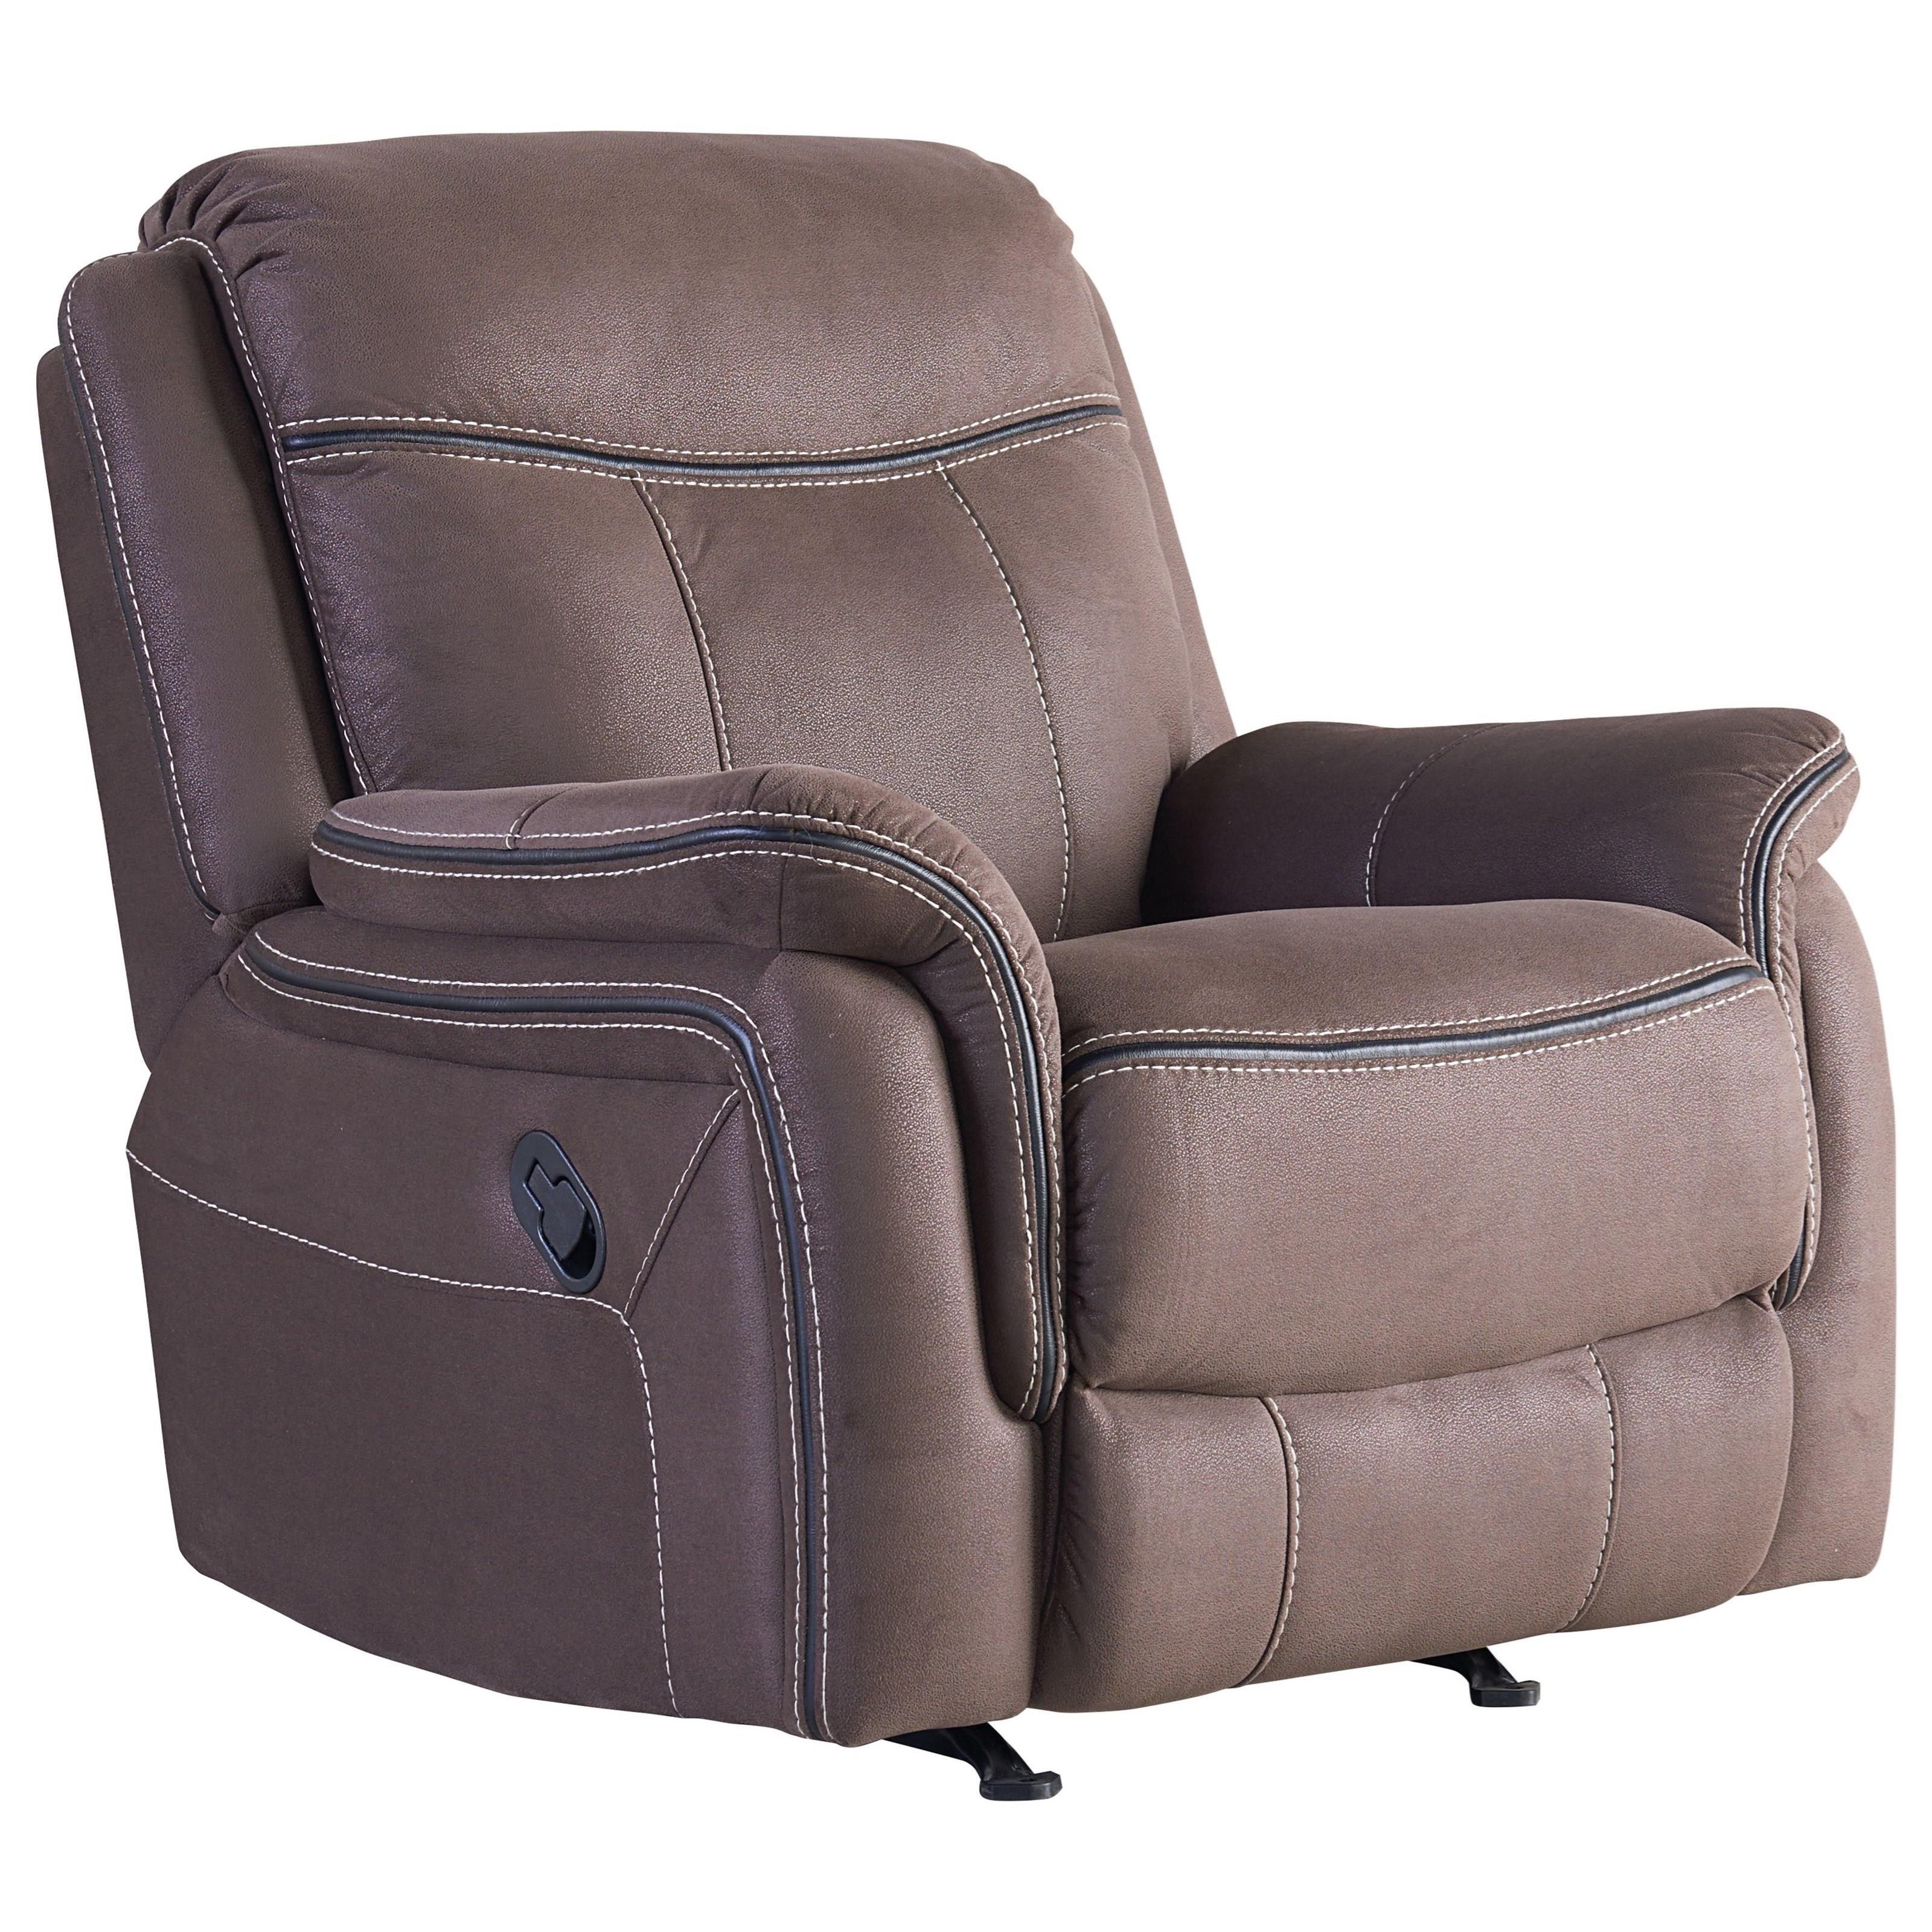 Standard Furniture Champion Rocker Recliner - Item Number: 4030983